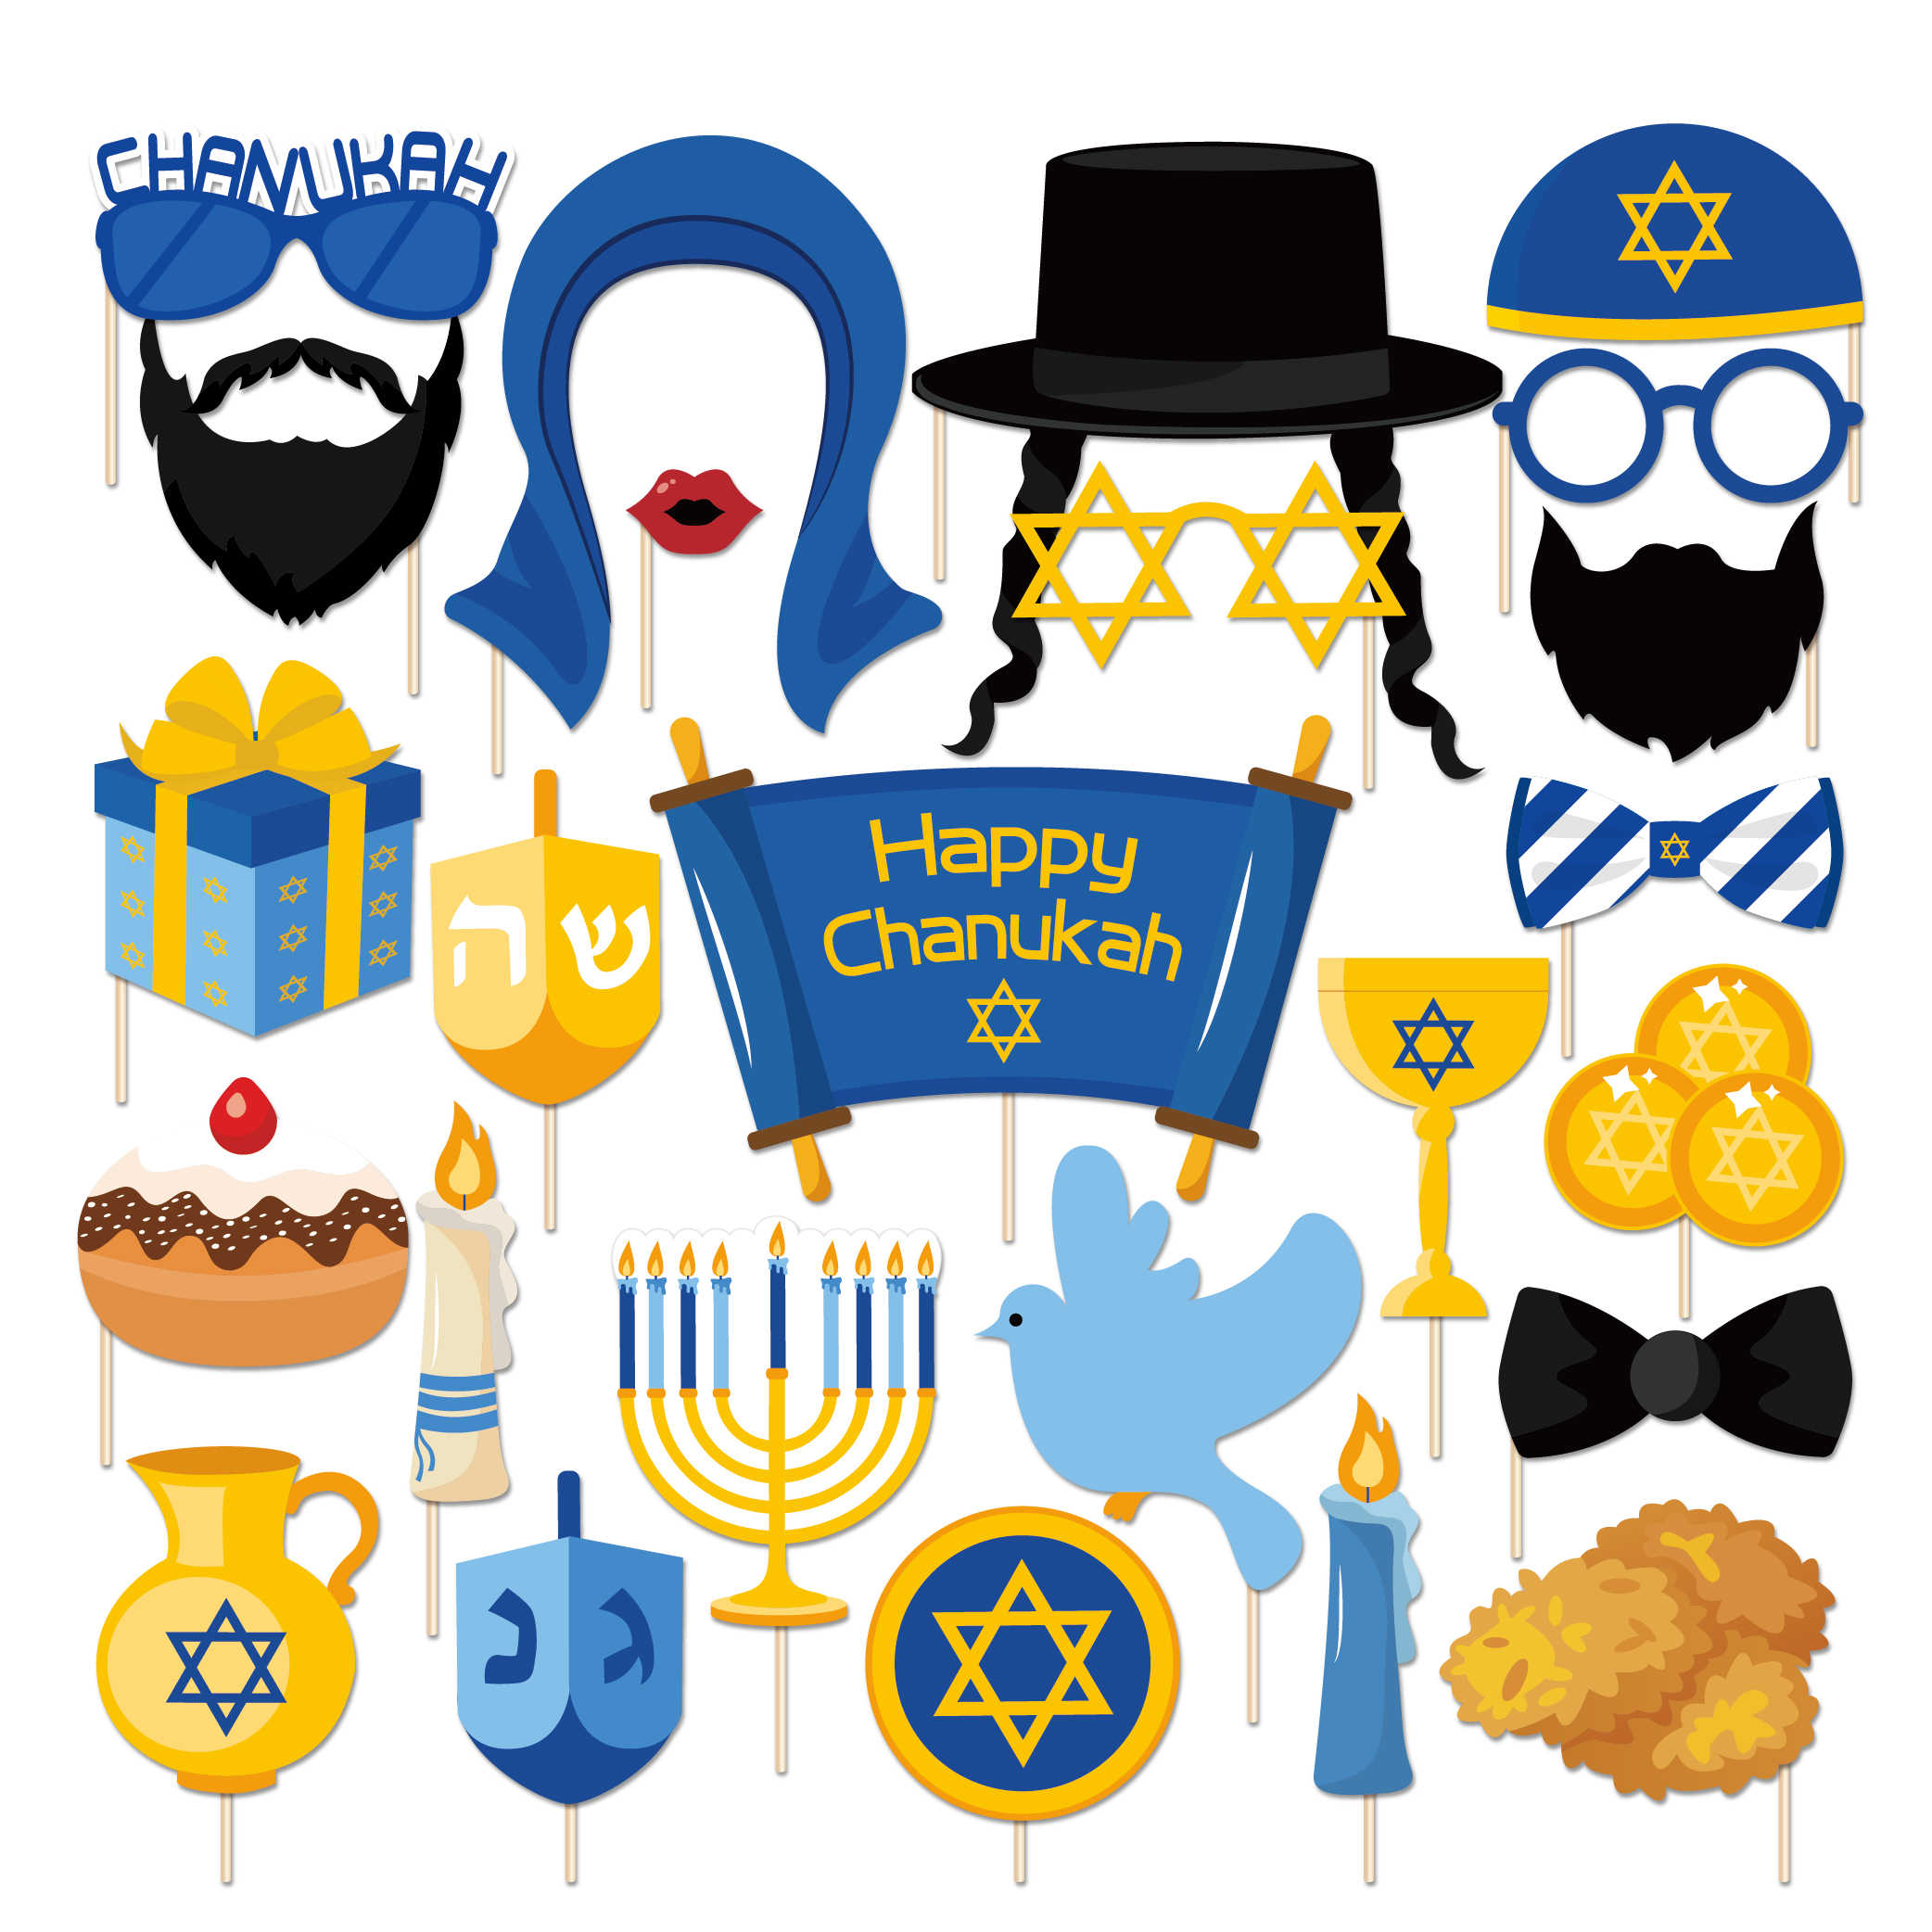 25pcs Happy Hanukkah Party Decorations DIY Photobooth Props Chanukah Theme Paper Cards Photobooth Props Party Favors Supplies